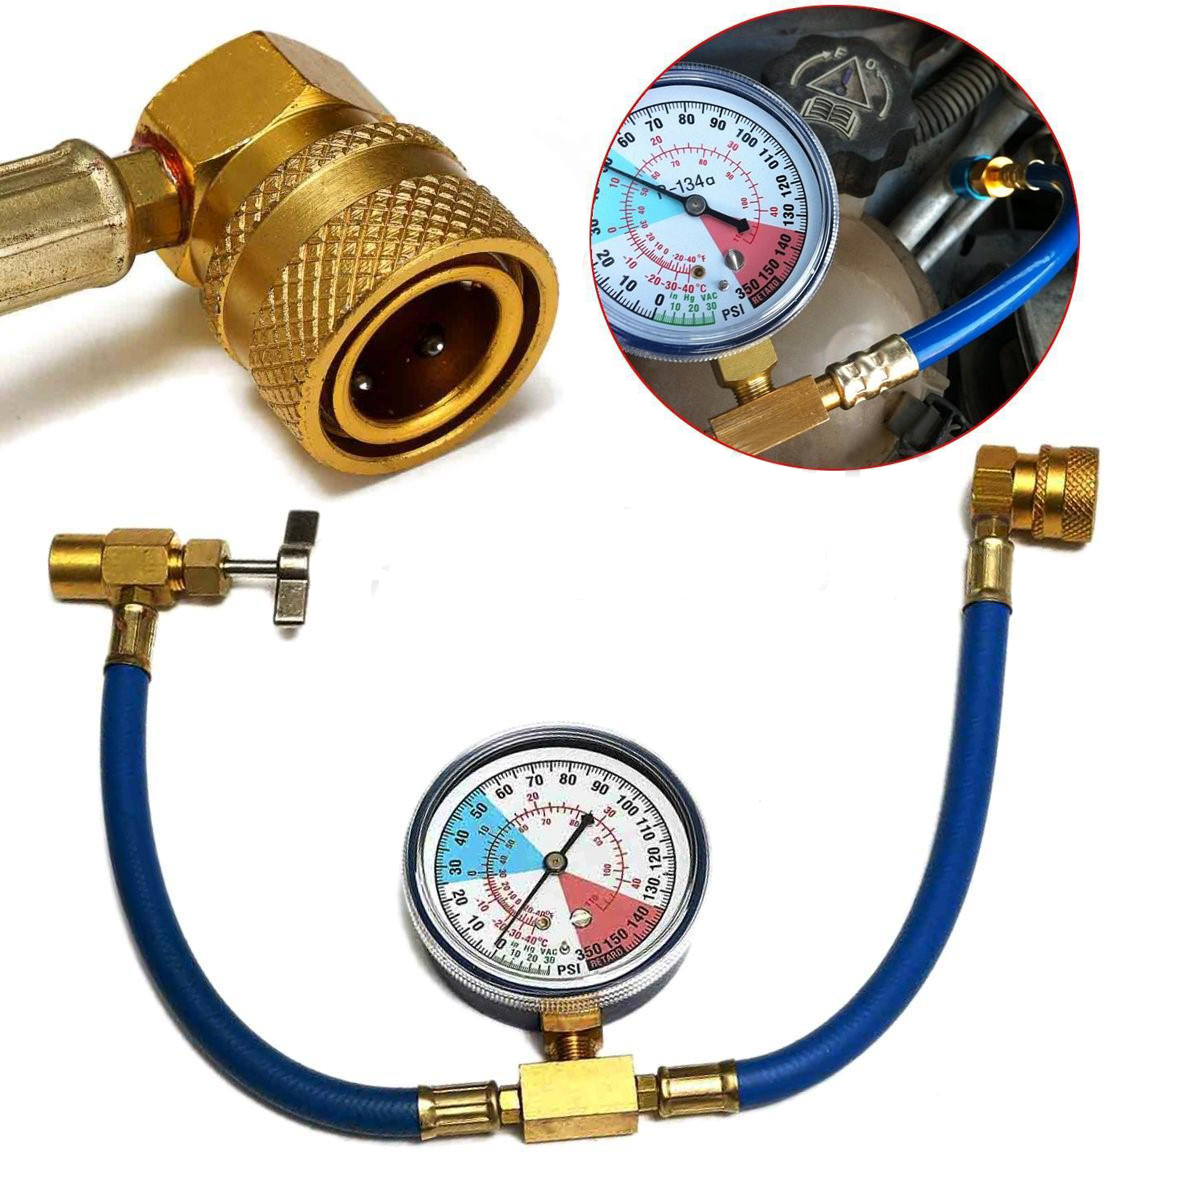 Mayitr R134A Refrigerant Recharge Measuring Hose With Pressure Gauge Kit M14 / 1/2 Thread For Car Air Conditioning AC 13mm male thread pressure relief valve for air compressor